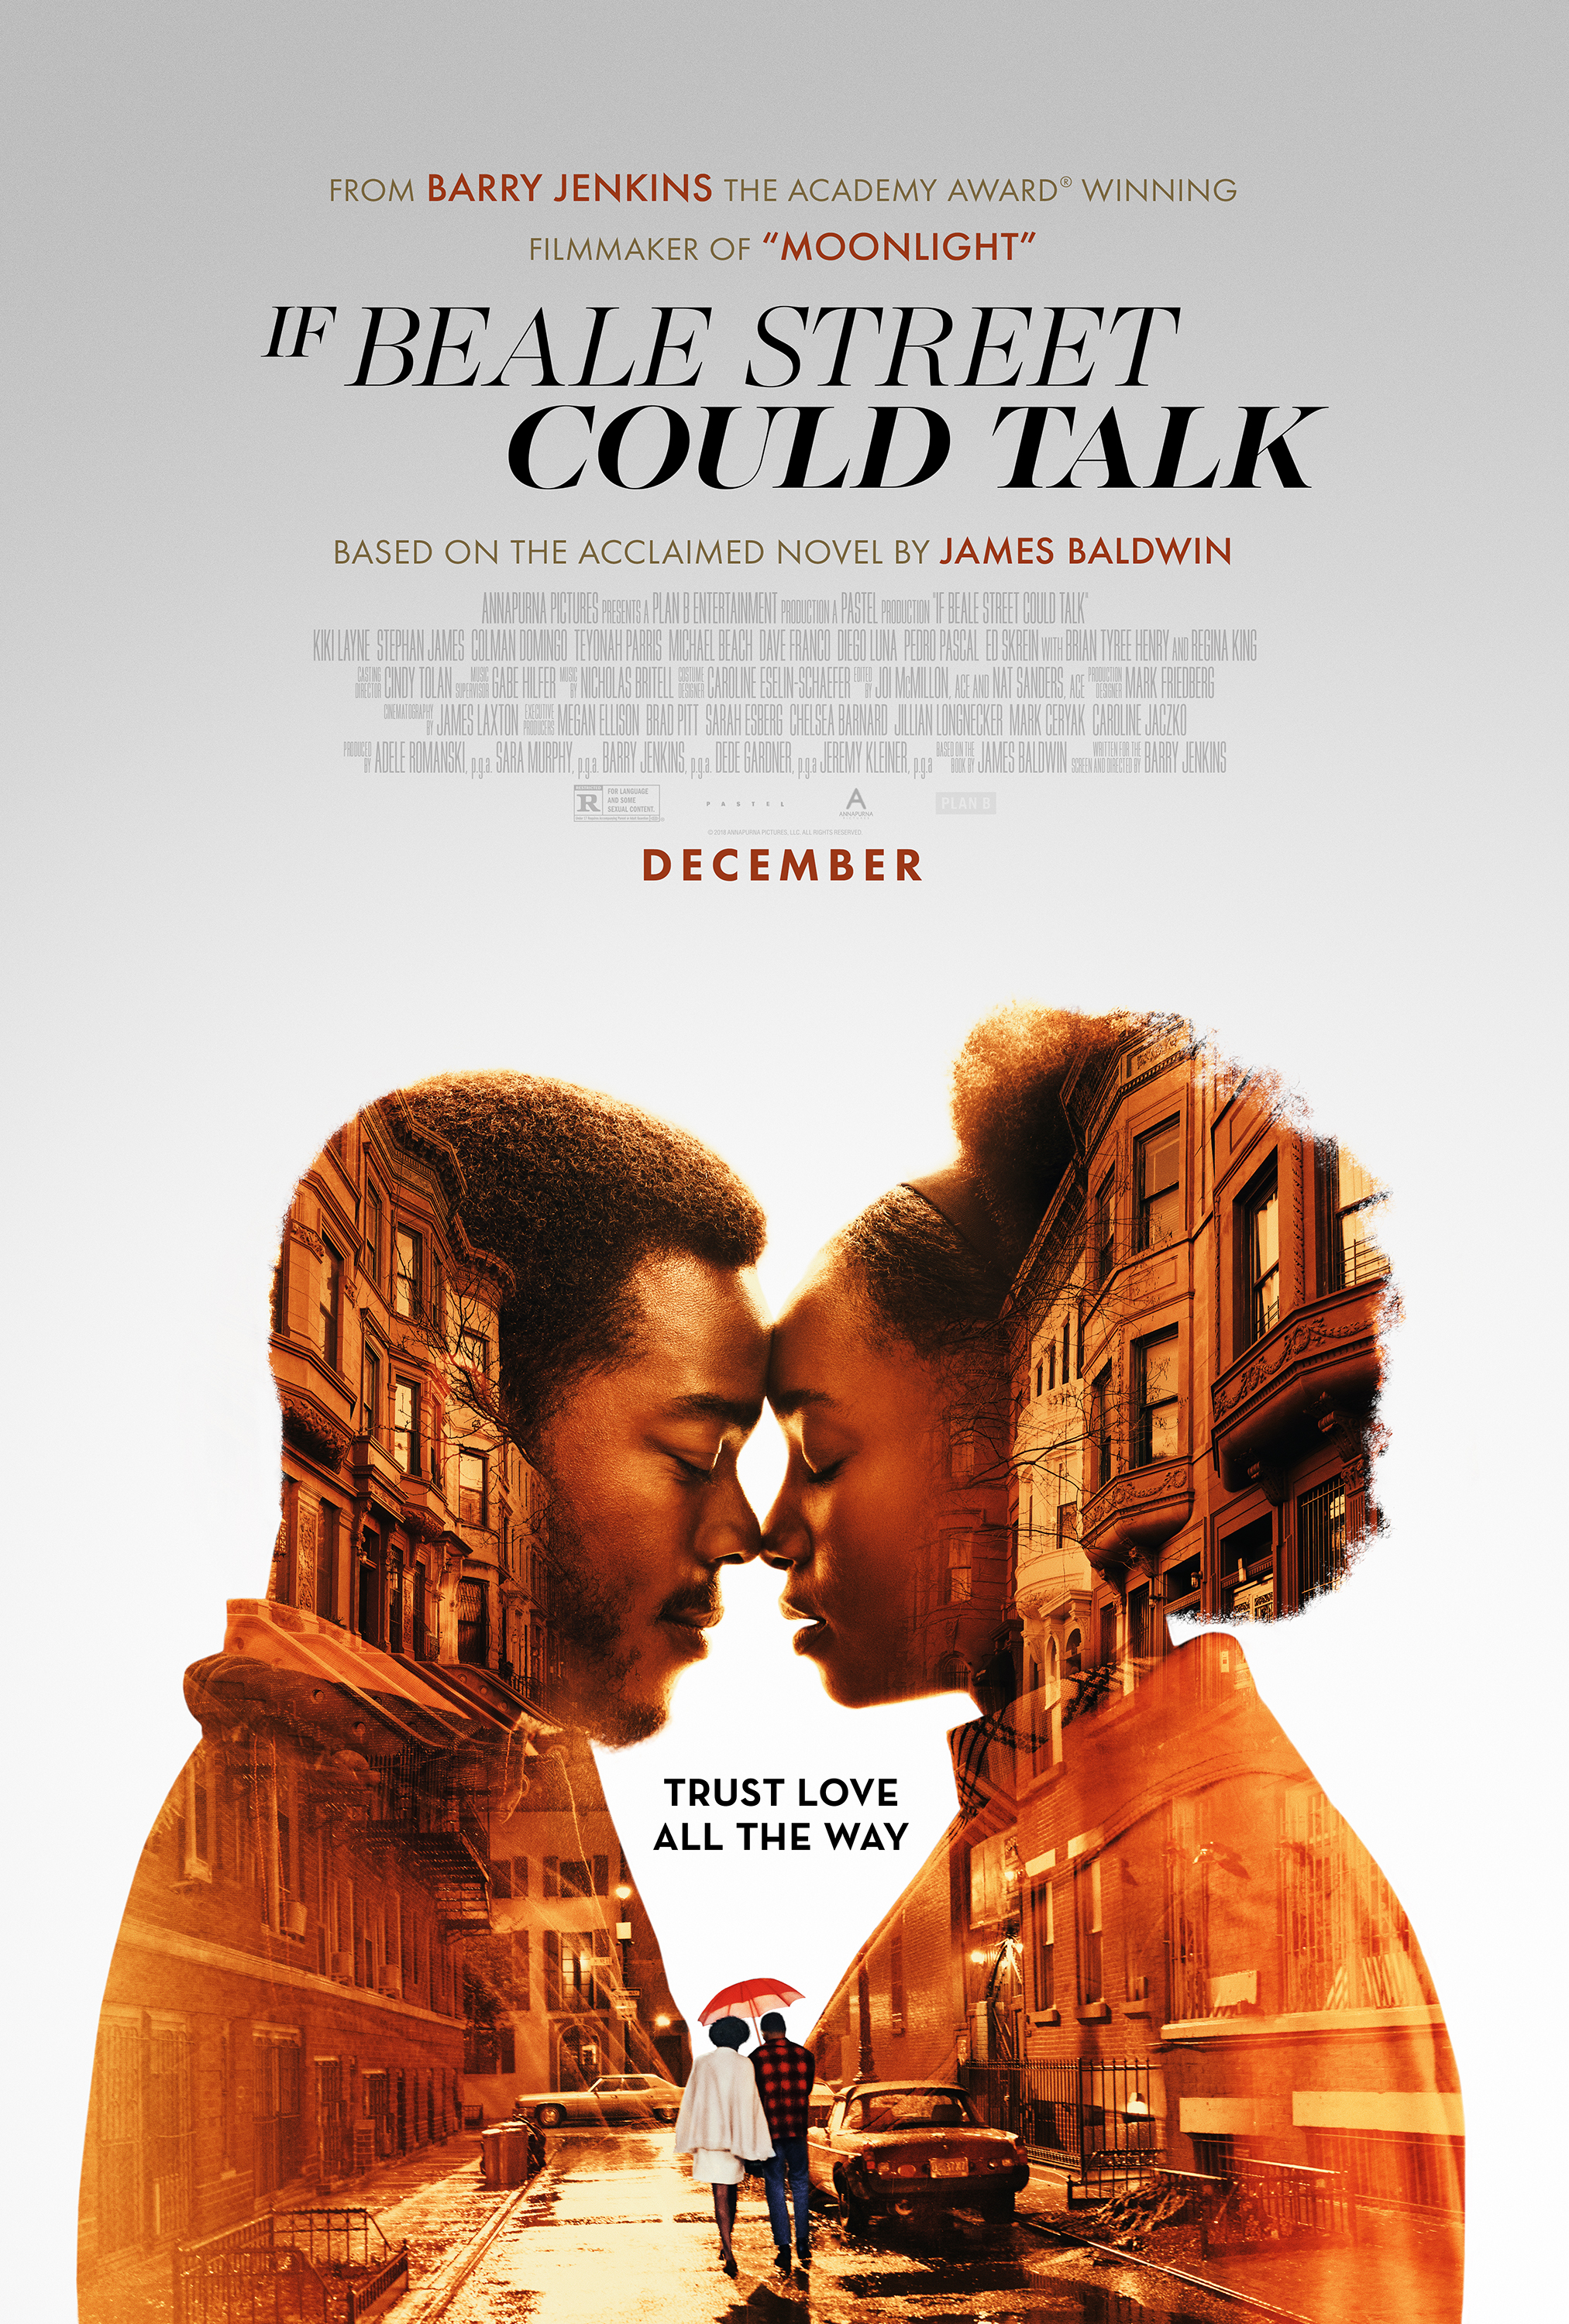 Best Adapted Screenplay: If Beale Street Could Talk -